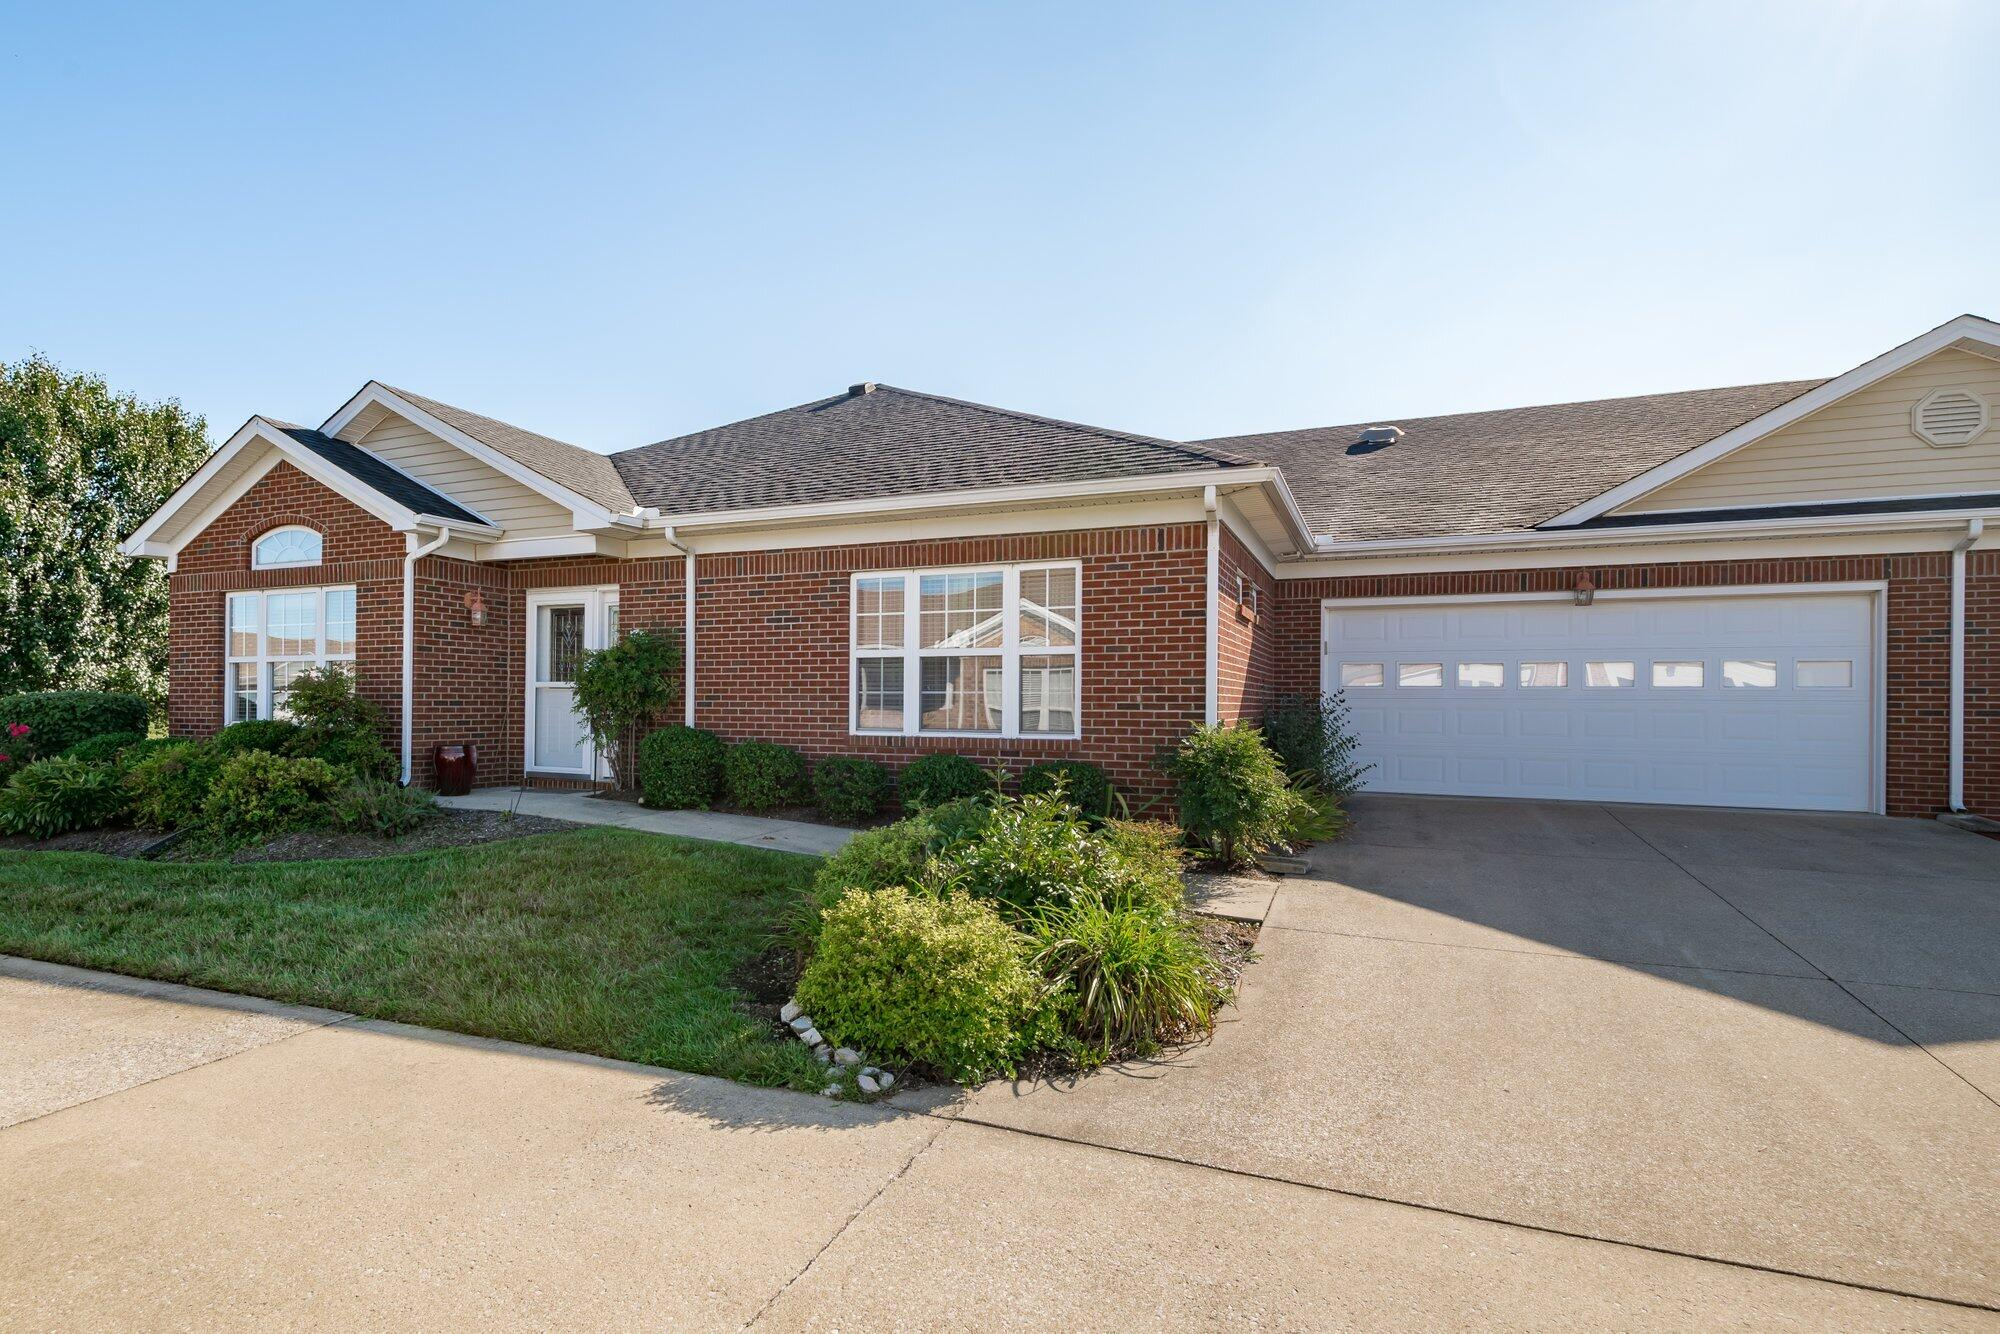 137 Delissa Drive, Georgetown, KY 40324